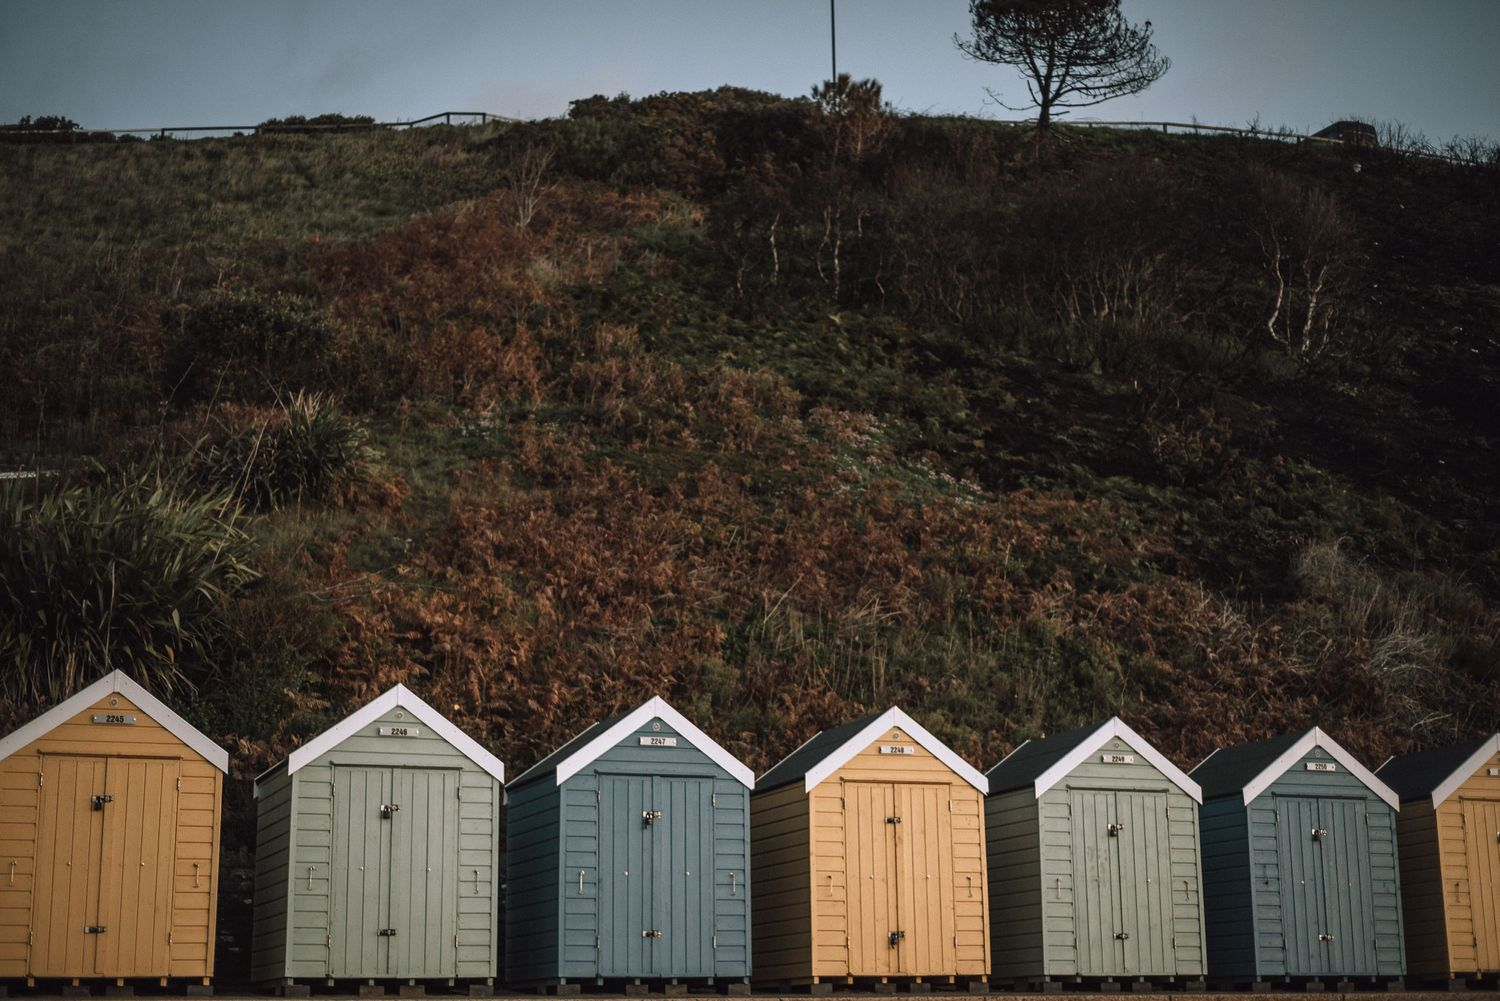 Beach huts in UK